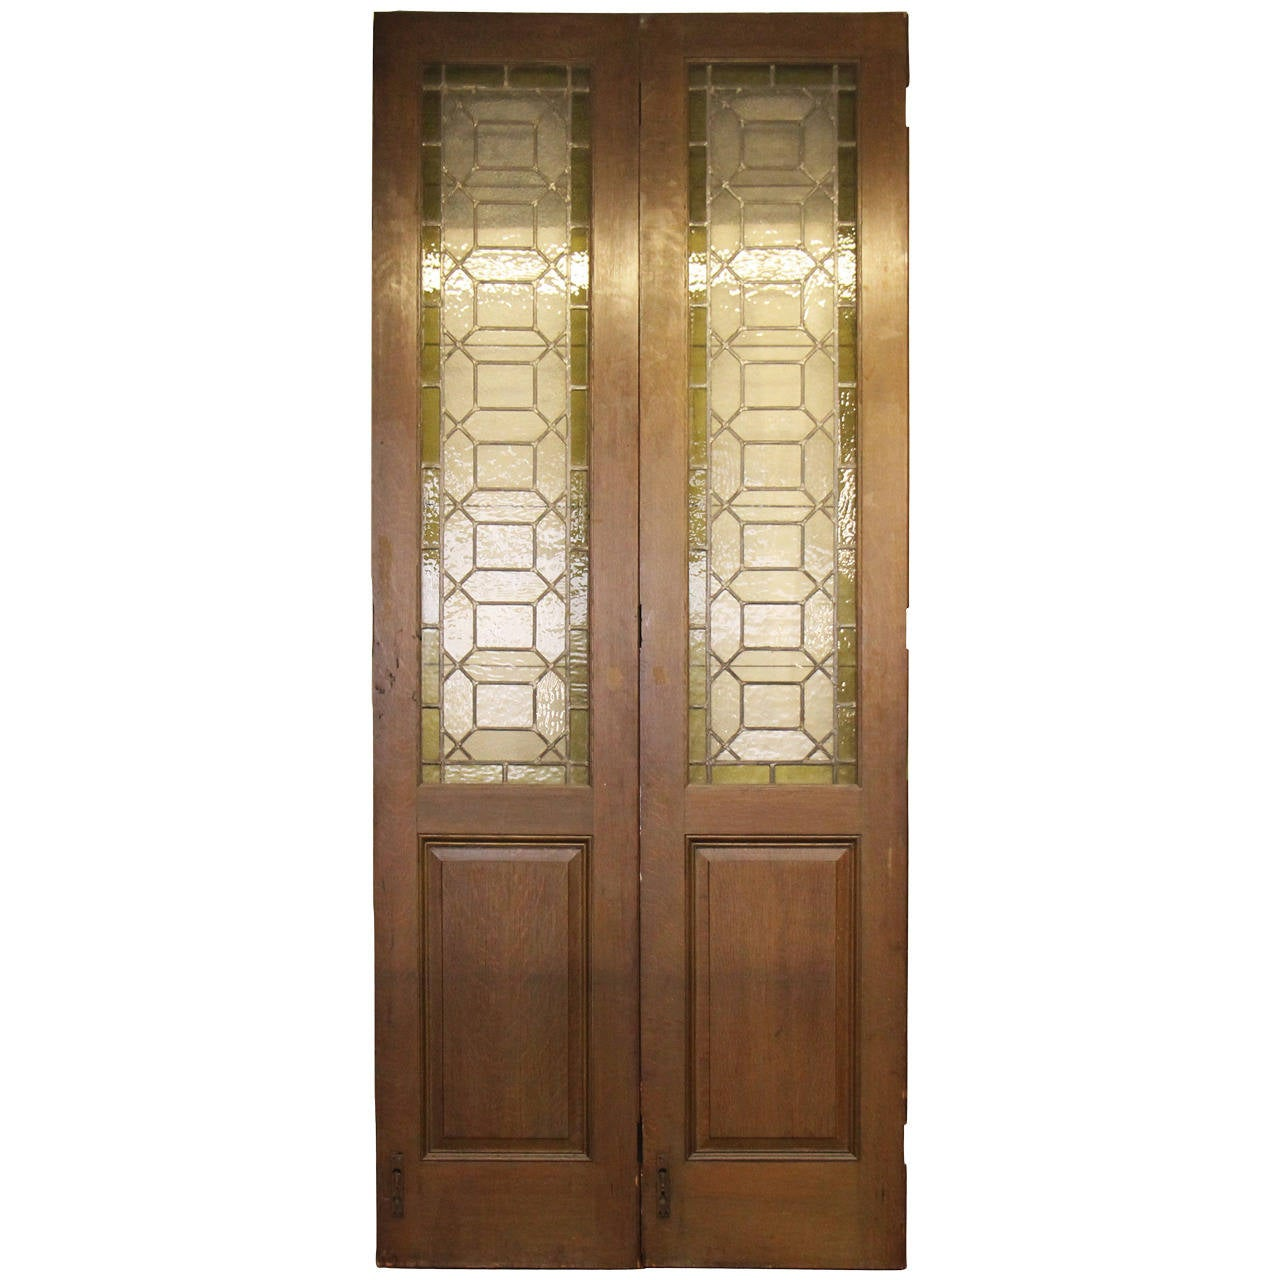 1907 Bifold Stained Glass Doors From Madison Avenue